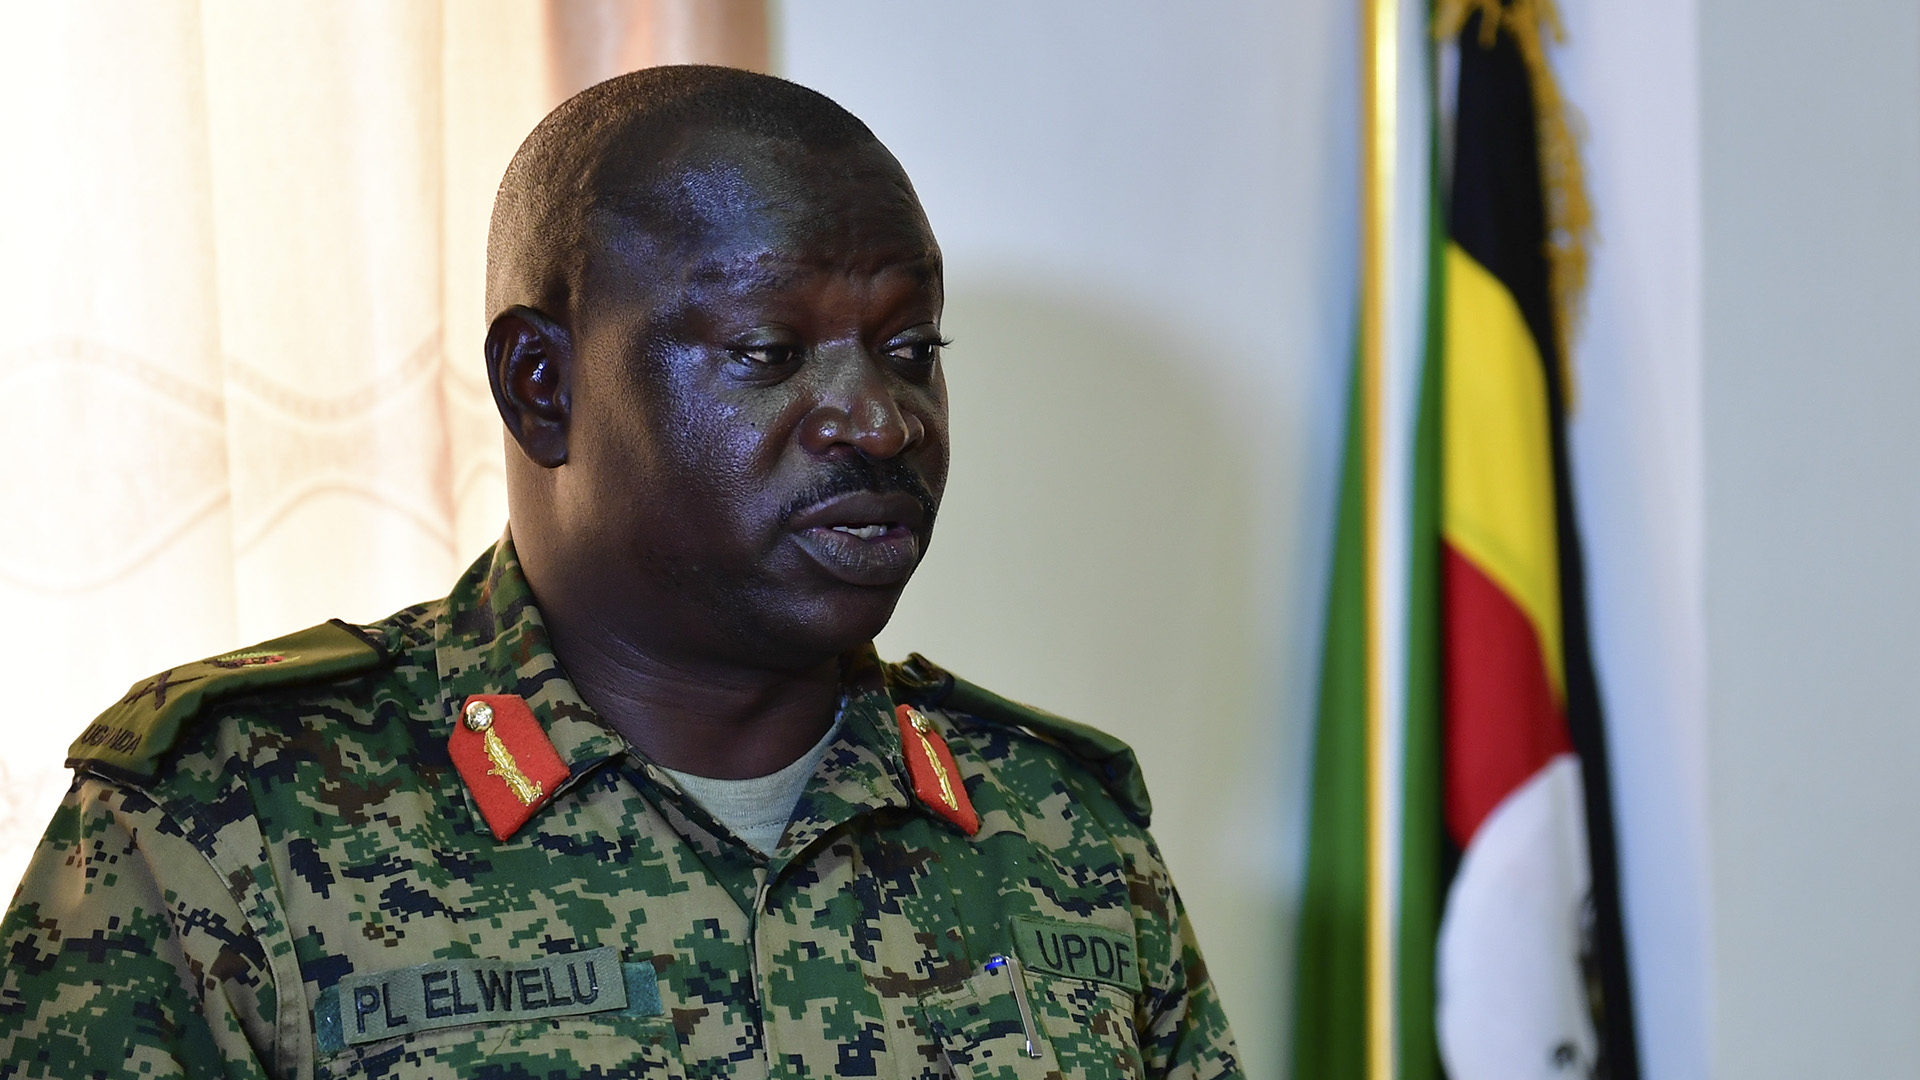 They Deserved Death: Ugandan General On Army's 2016 Massacre Of 155 In Kasese